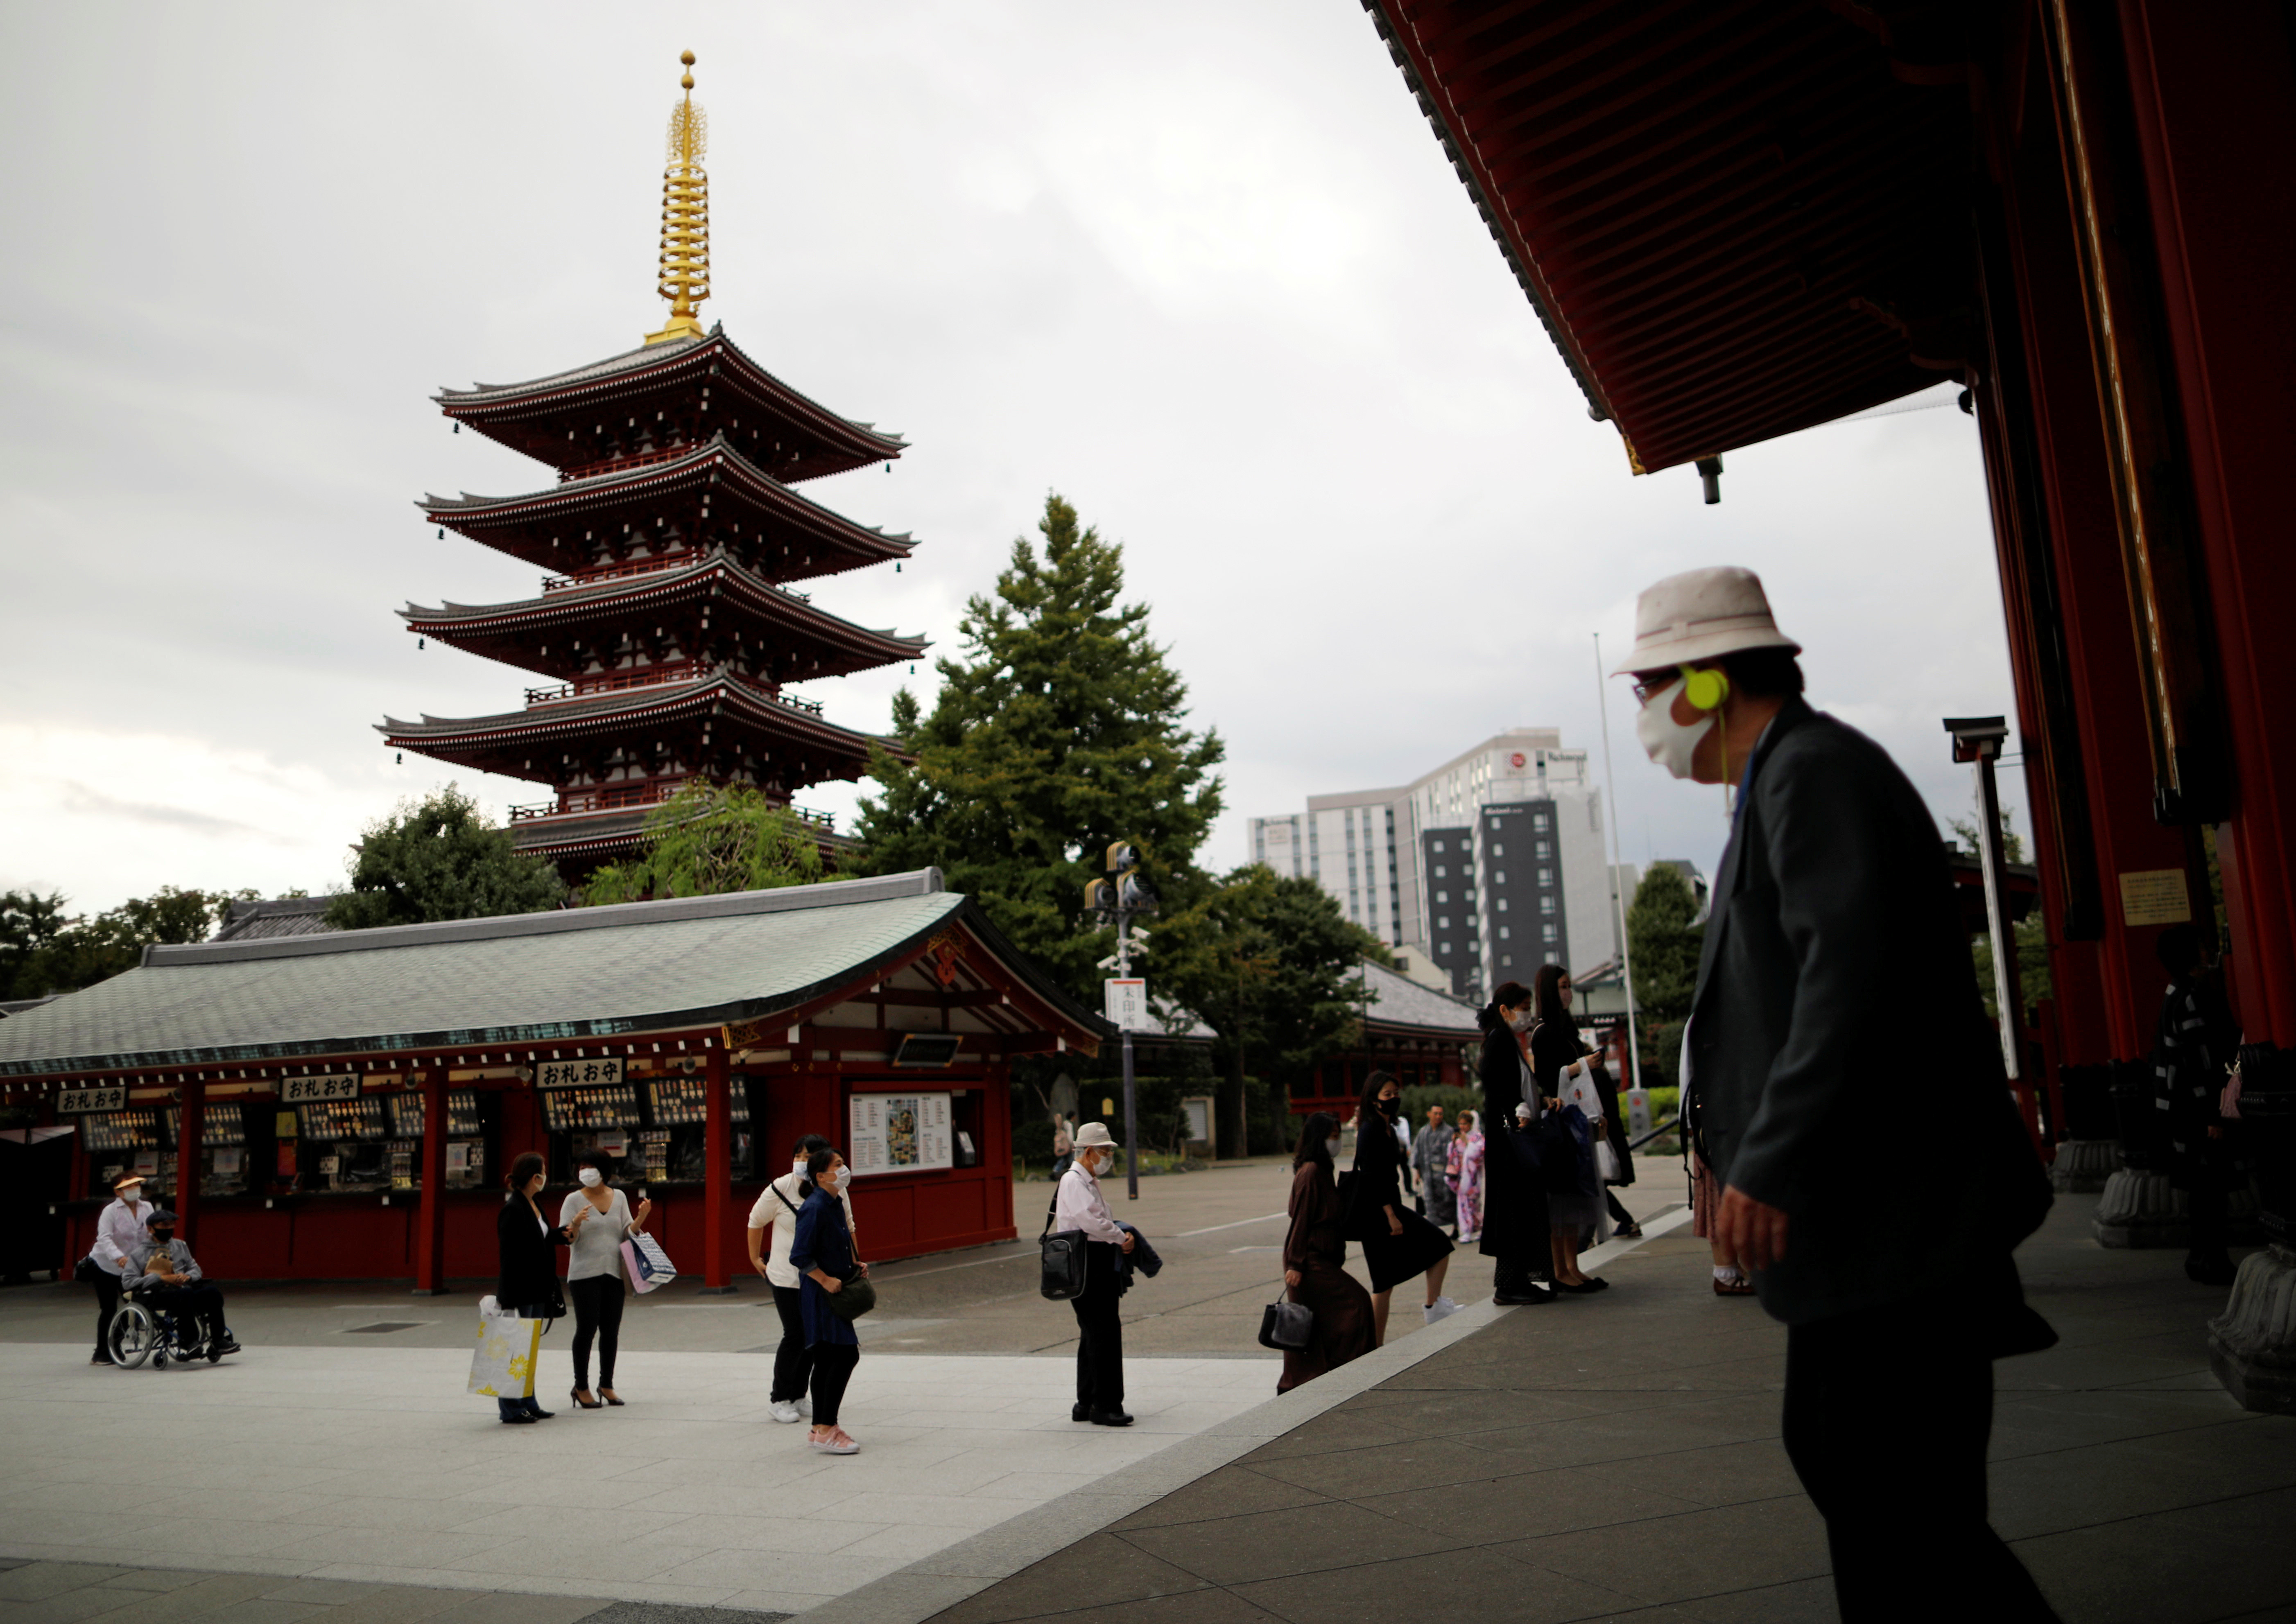 Visitors wearing protective face masks practice social distancing as they offer prayers at a temple at Asakusa district, a popular sightseeing spot, amid the coronavirus disease (COVID-19) outbreak in Tokyo, Japan October 13, 2020.   REUTERS/Issei Kato - RC2KHJ9ZNXUP